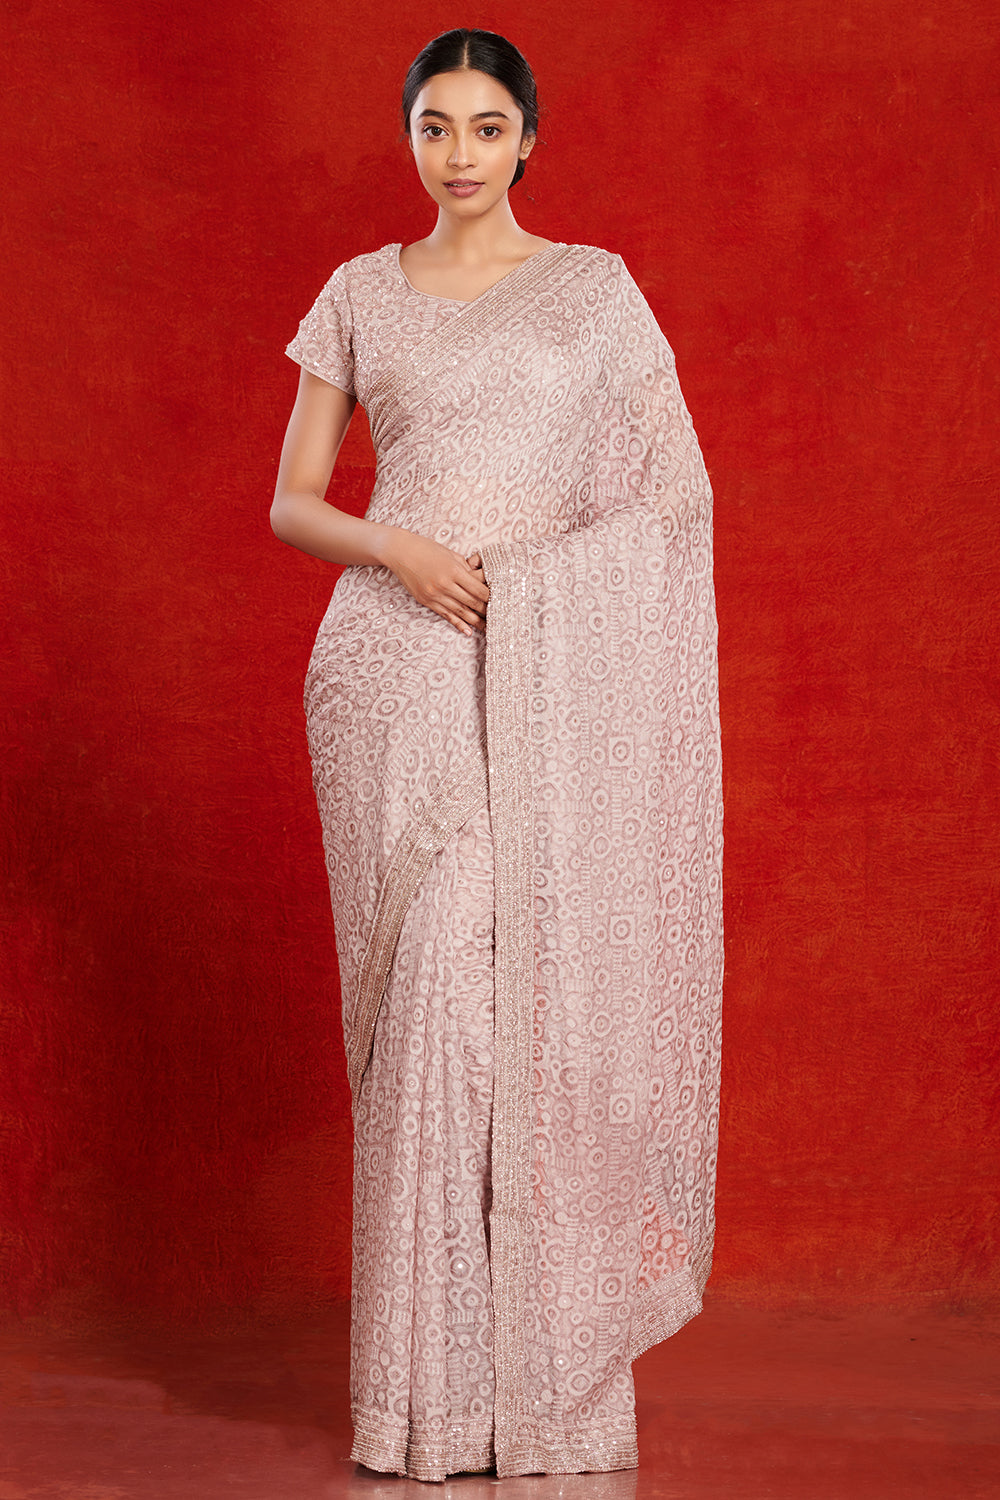 Buy stunning light pink printed chiffon saree online in USA with embellished blouse. Make a fashion statement on festive occasions and weddings with designer sarees, embroidered saris, handwoven saris, party wear sarees from Pure Elegance Indian fashion store in USA.-front